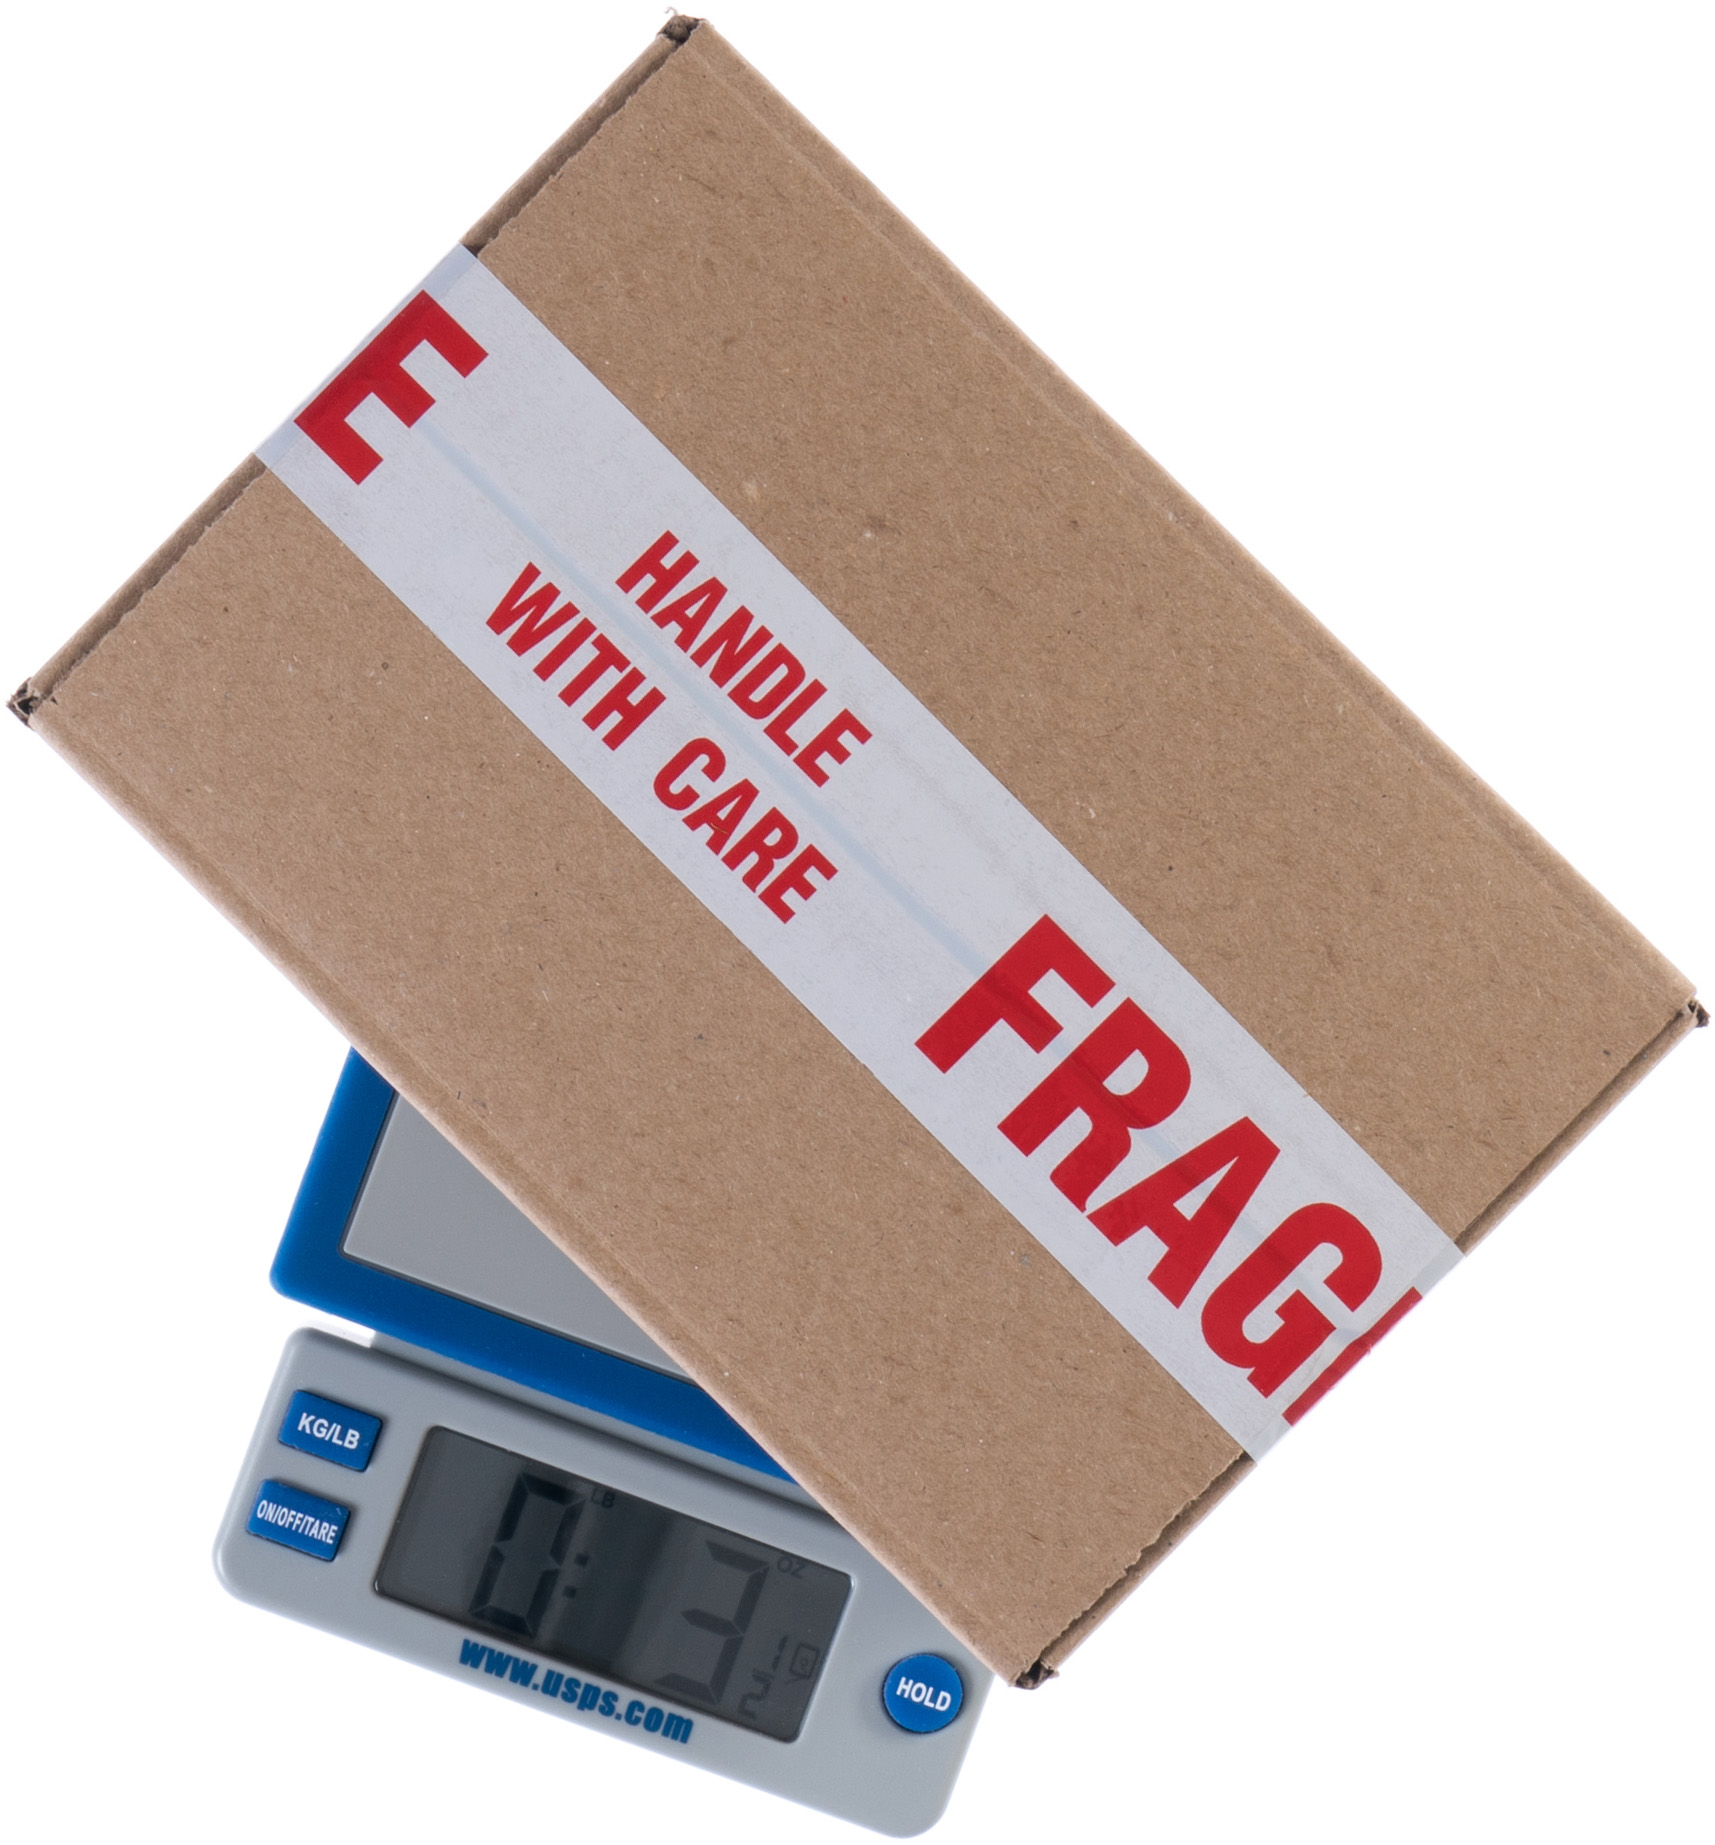 A shipping scale with a fragile box on it